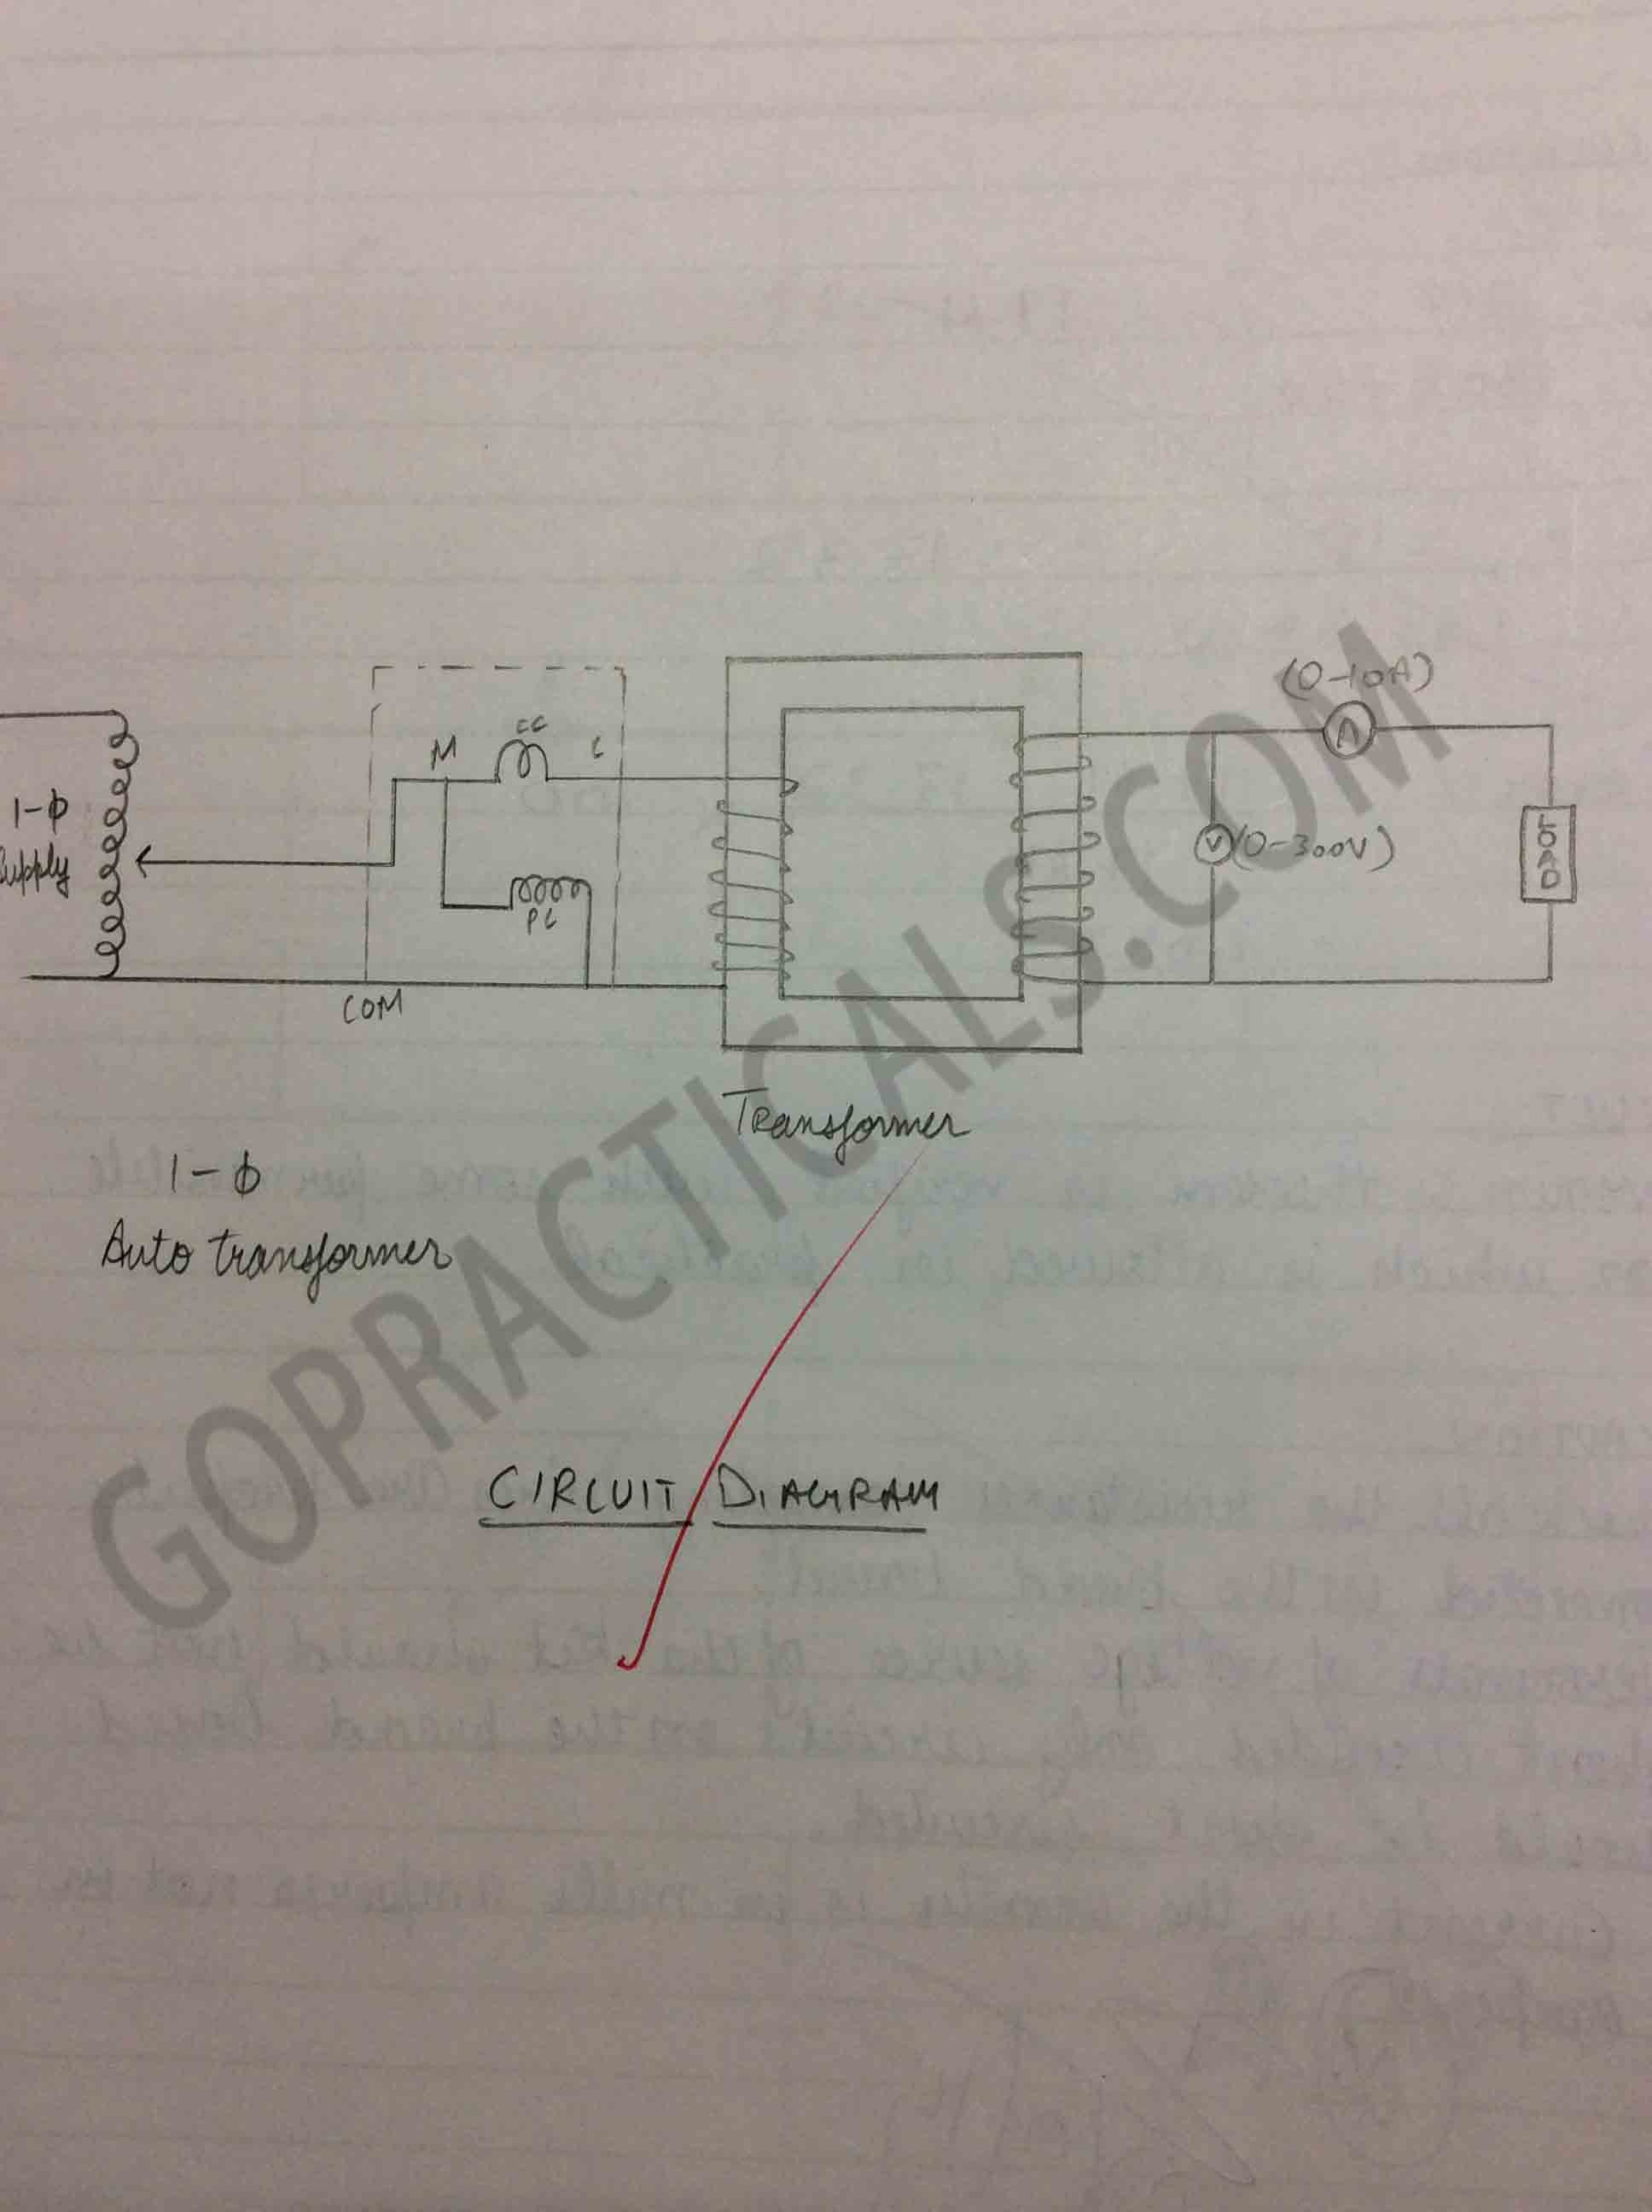 To determine the efficiency and voltage regulation of a Single Phase ...